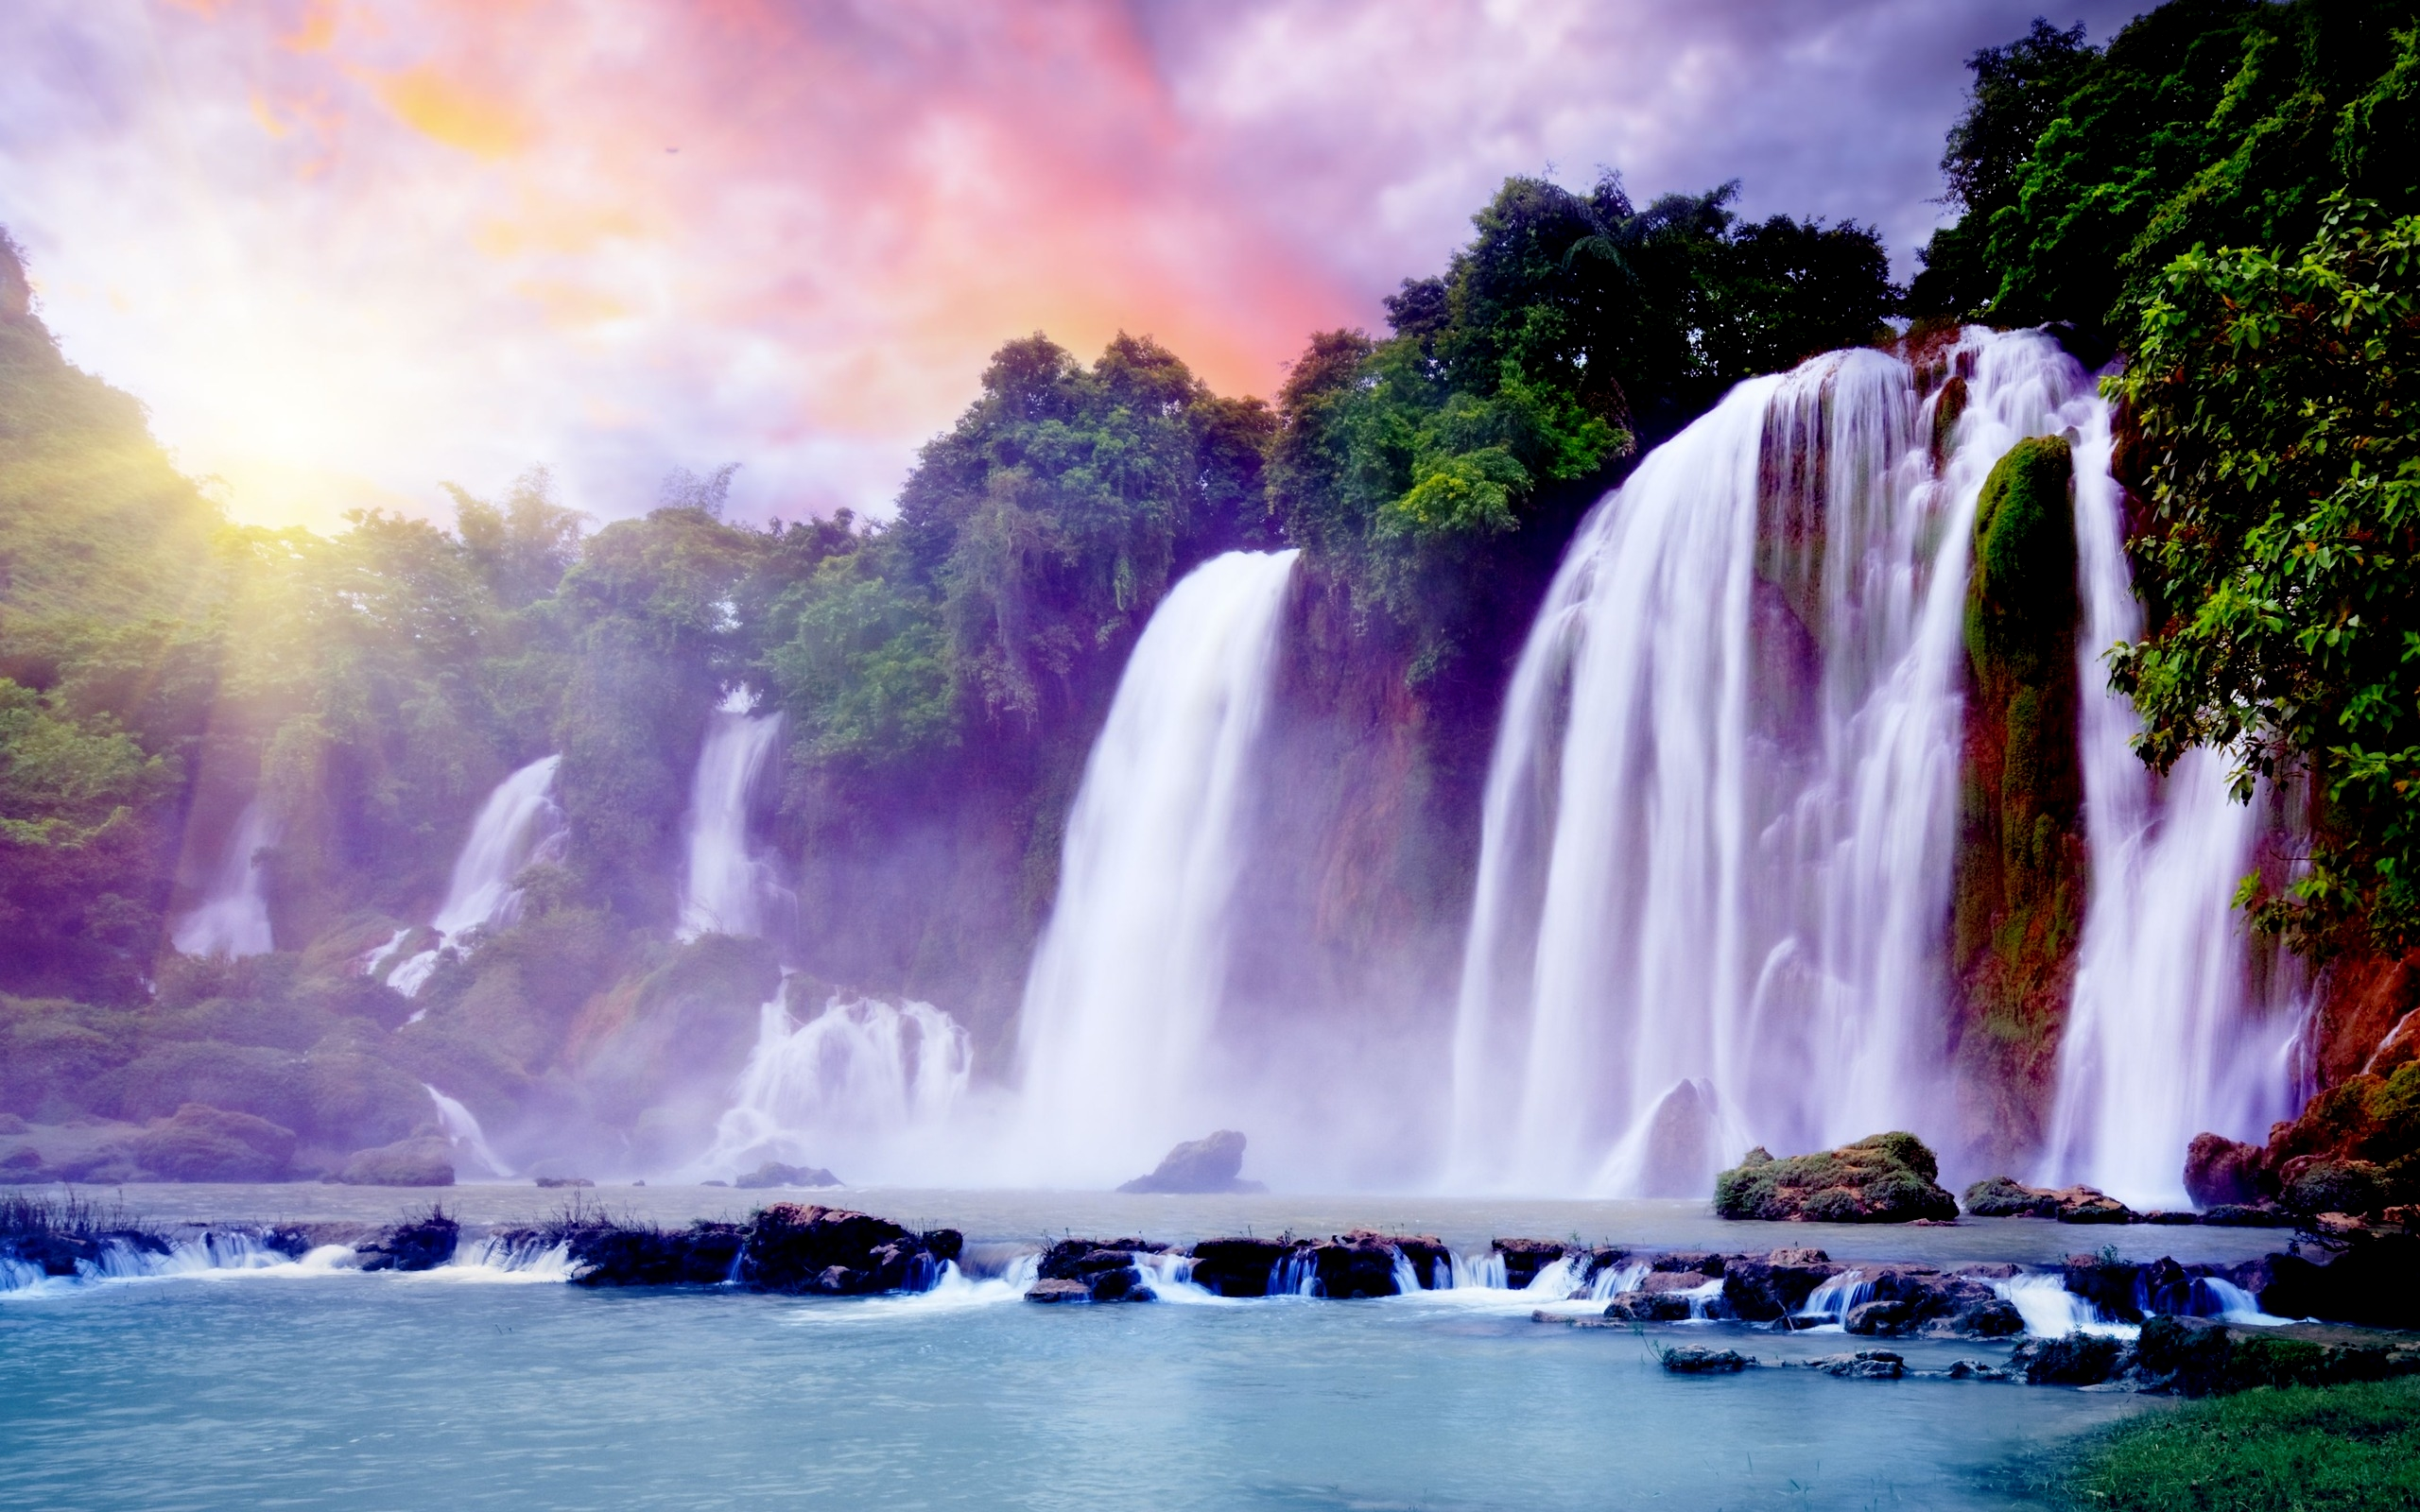 Waterfalls Wallpaper   PARADISE FALLS Wallpapers   HD Wallpapers 2560x1600